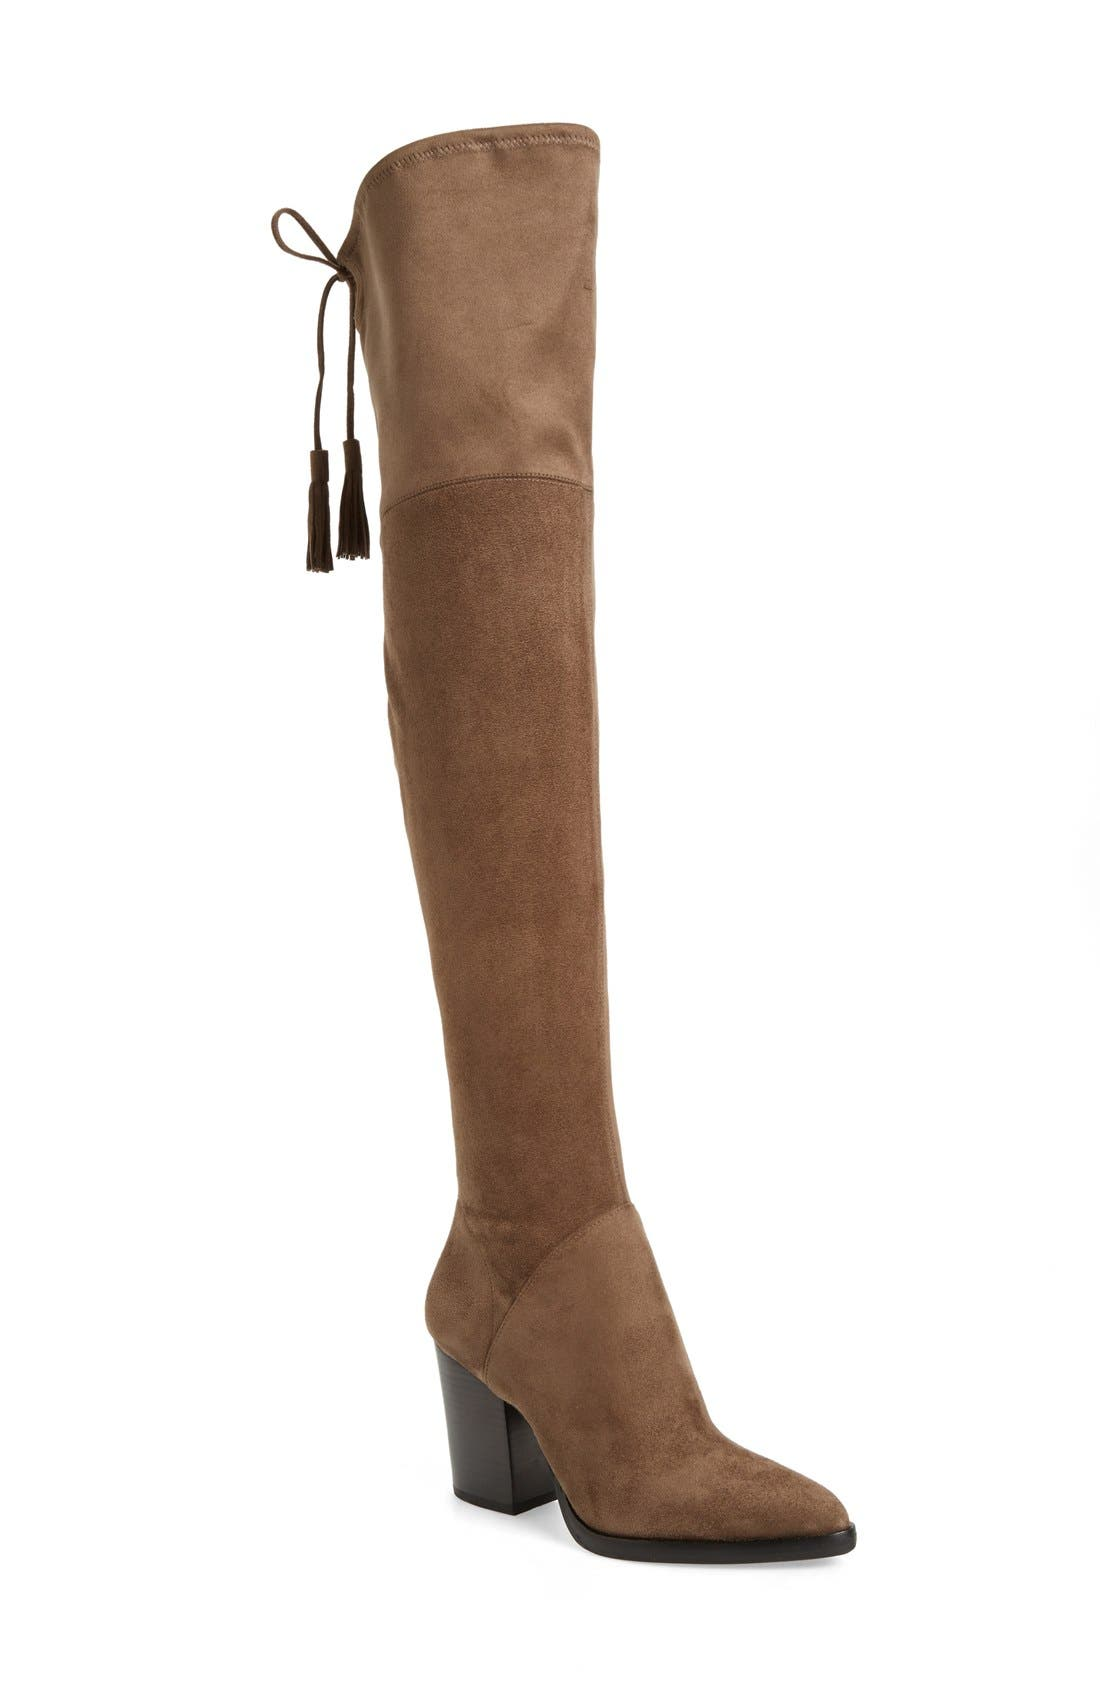 'Alinda' Over the Knee Boot,                             Main thumbnail 1, color,                             Tan Stretch Fabric